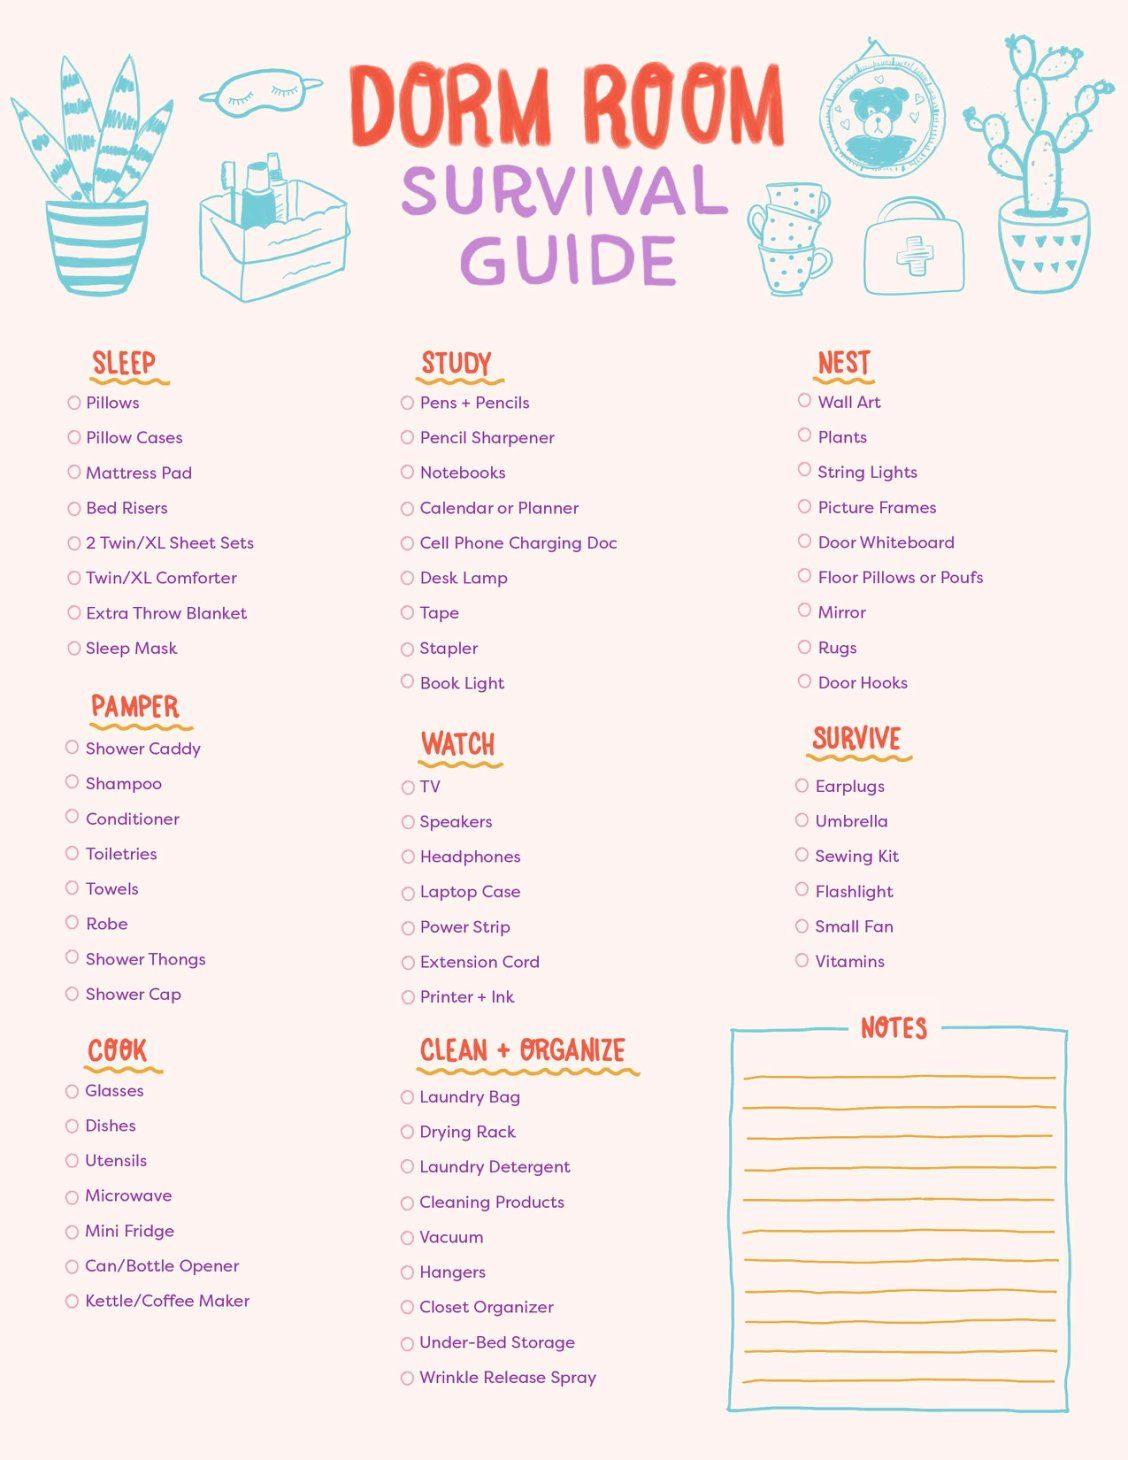 Print This Dorm Room Checklist To Survive College Dorm Room Checklist College Dorm Checklist Dorm Checklist